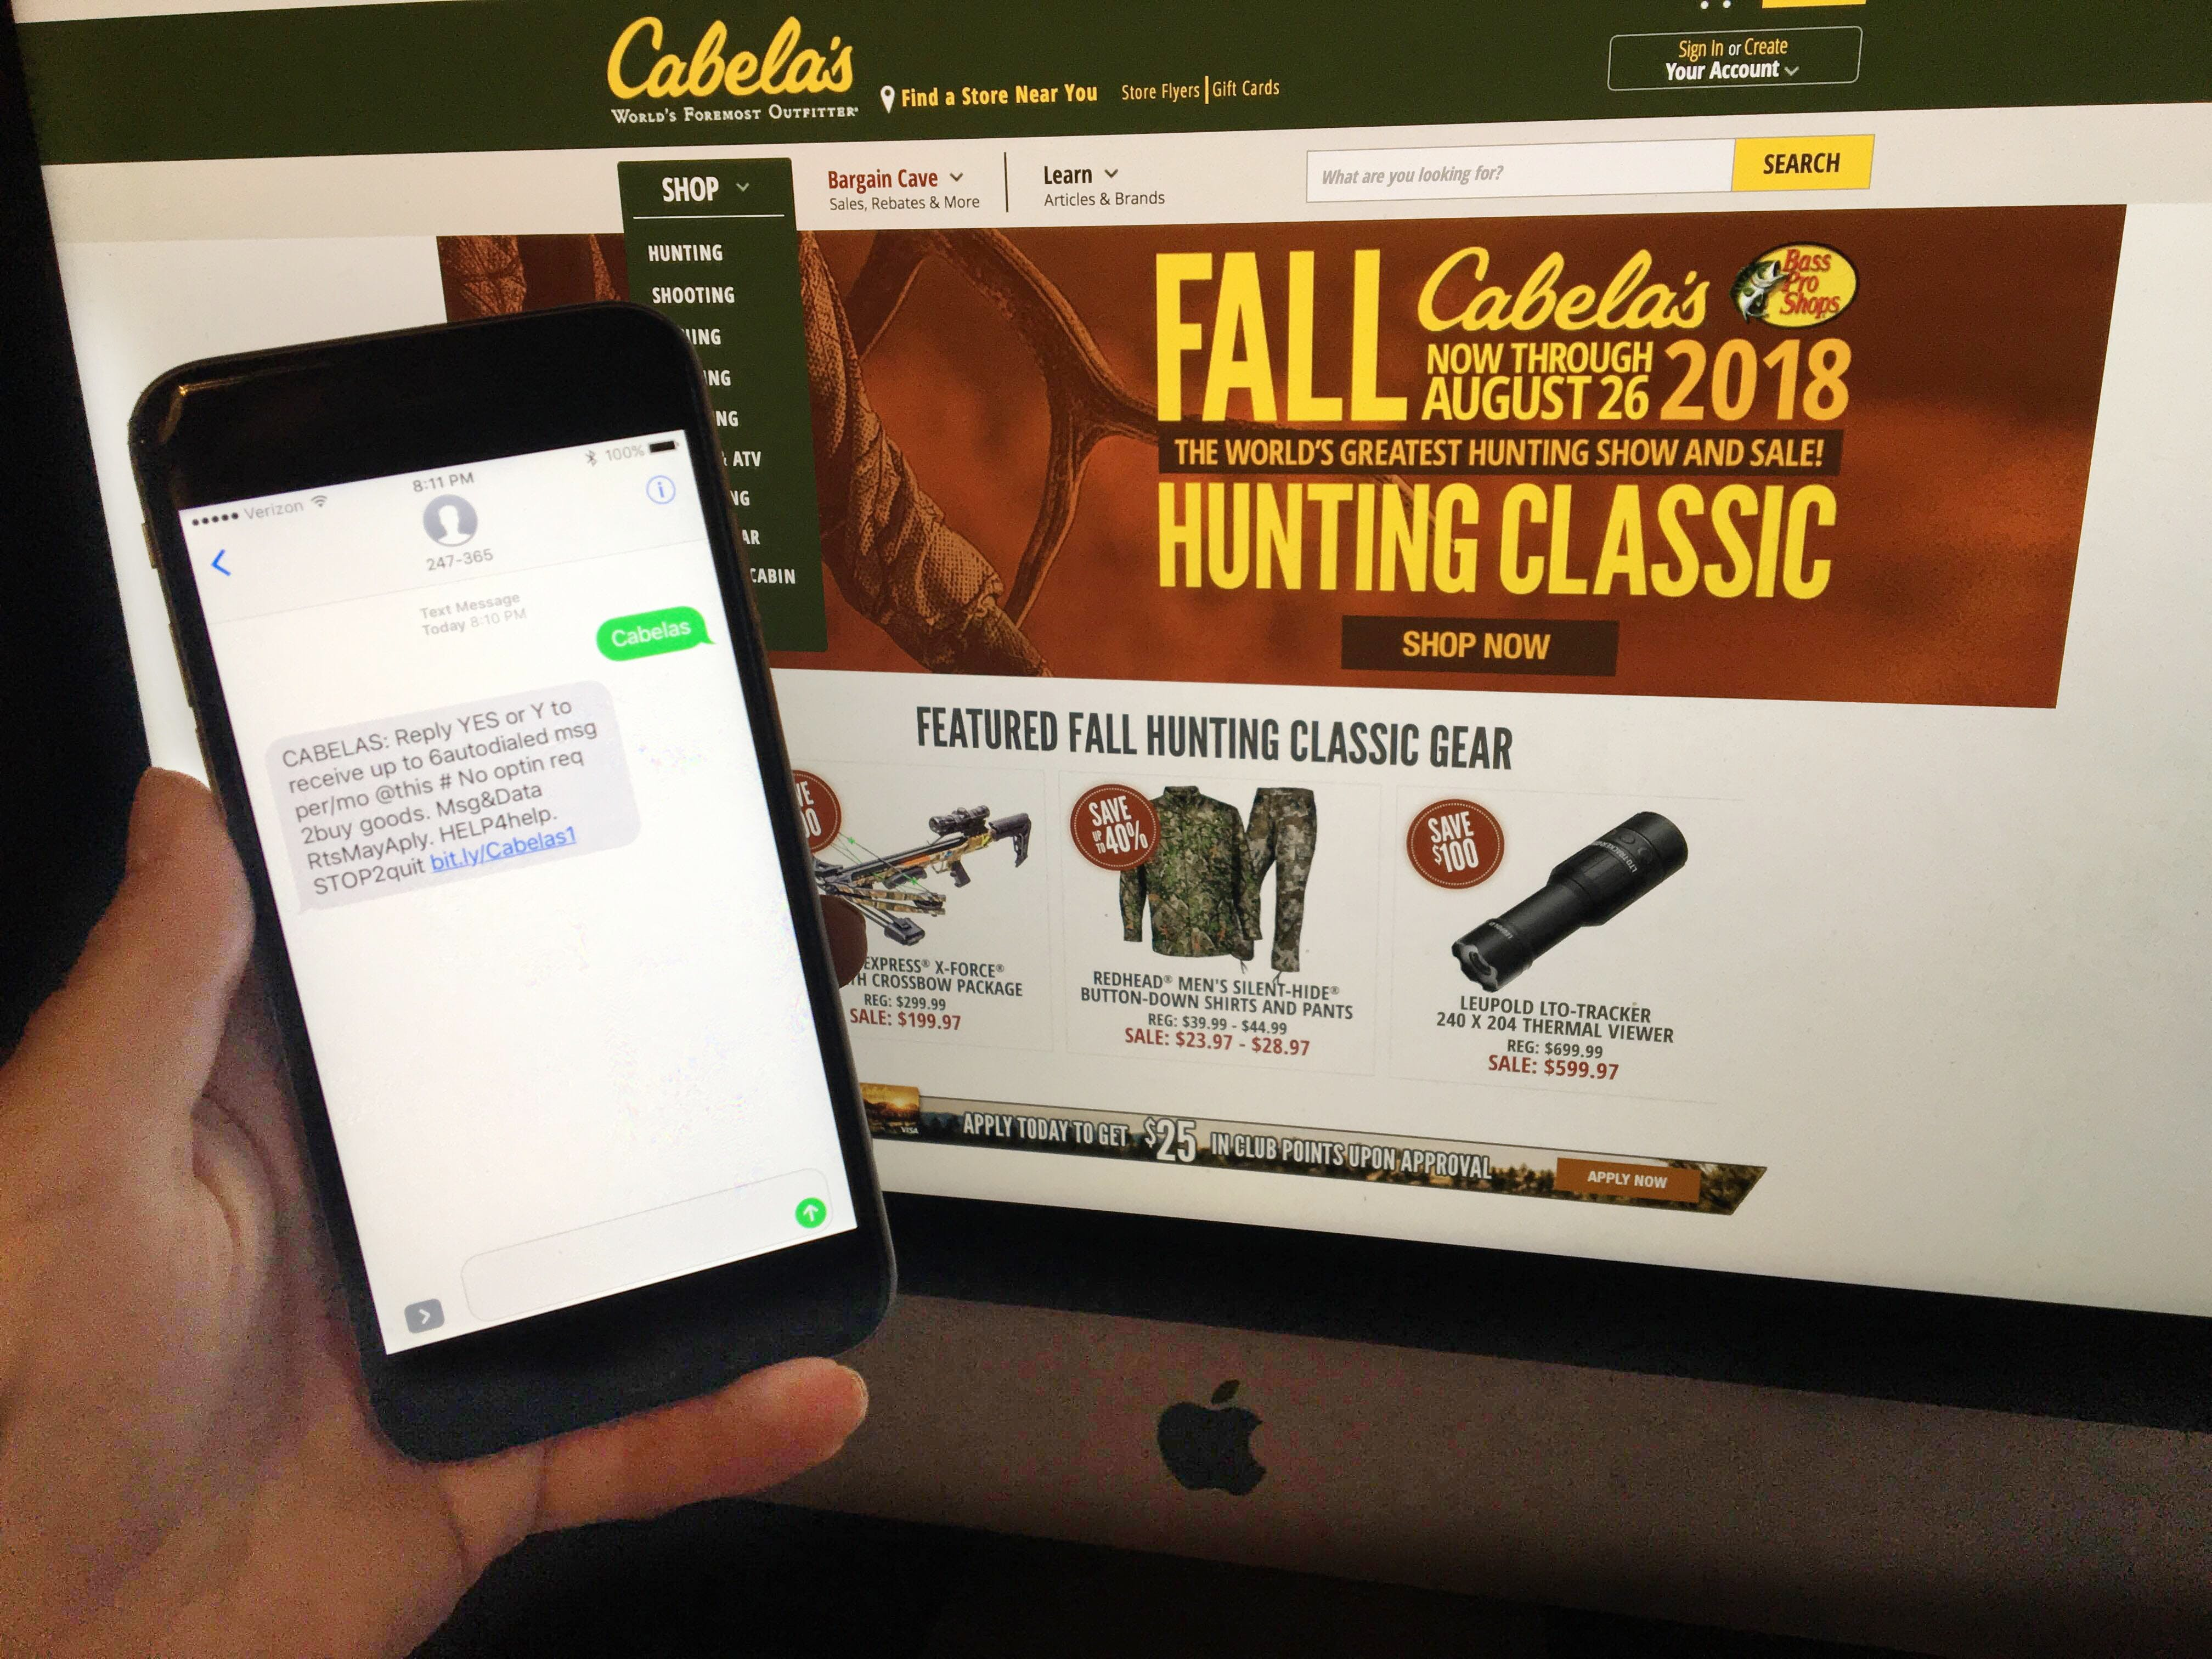 40 Ways To Beat Cabela S Notoriously High Prices The Krazy Coupon Lady